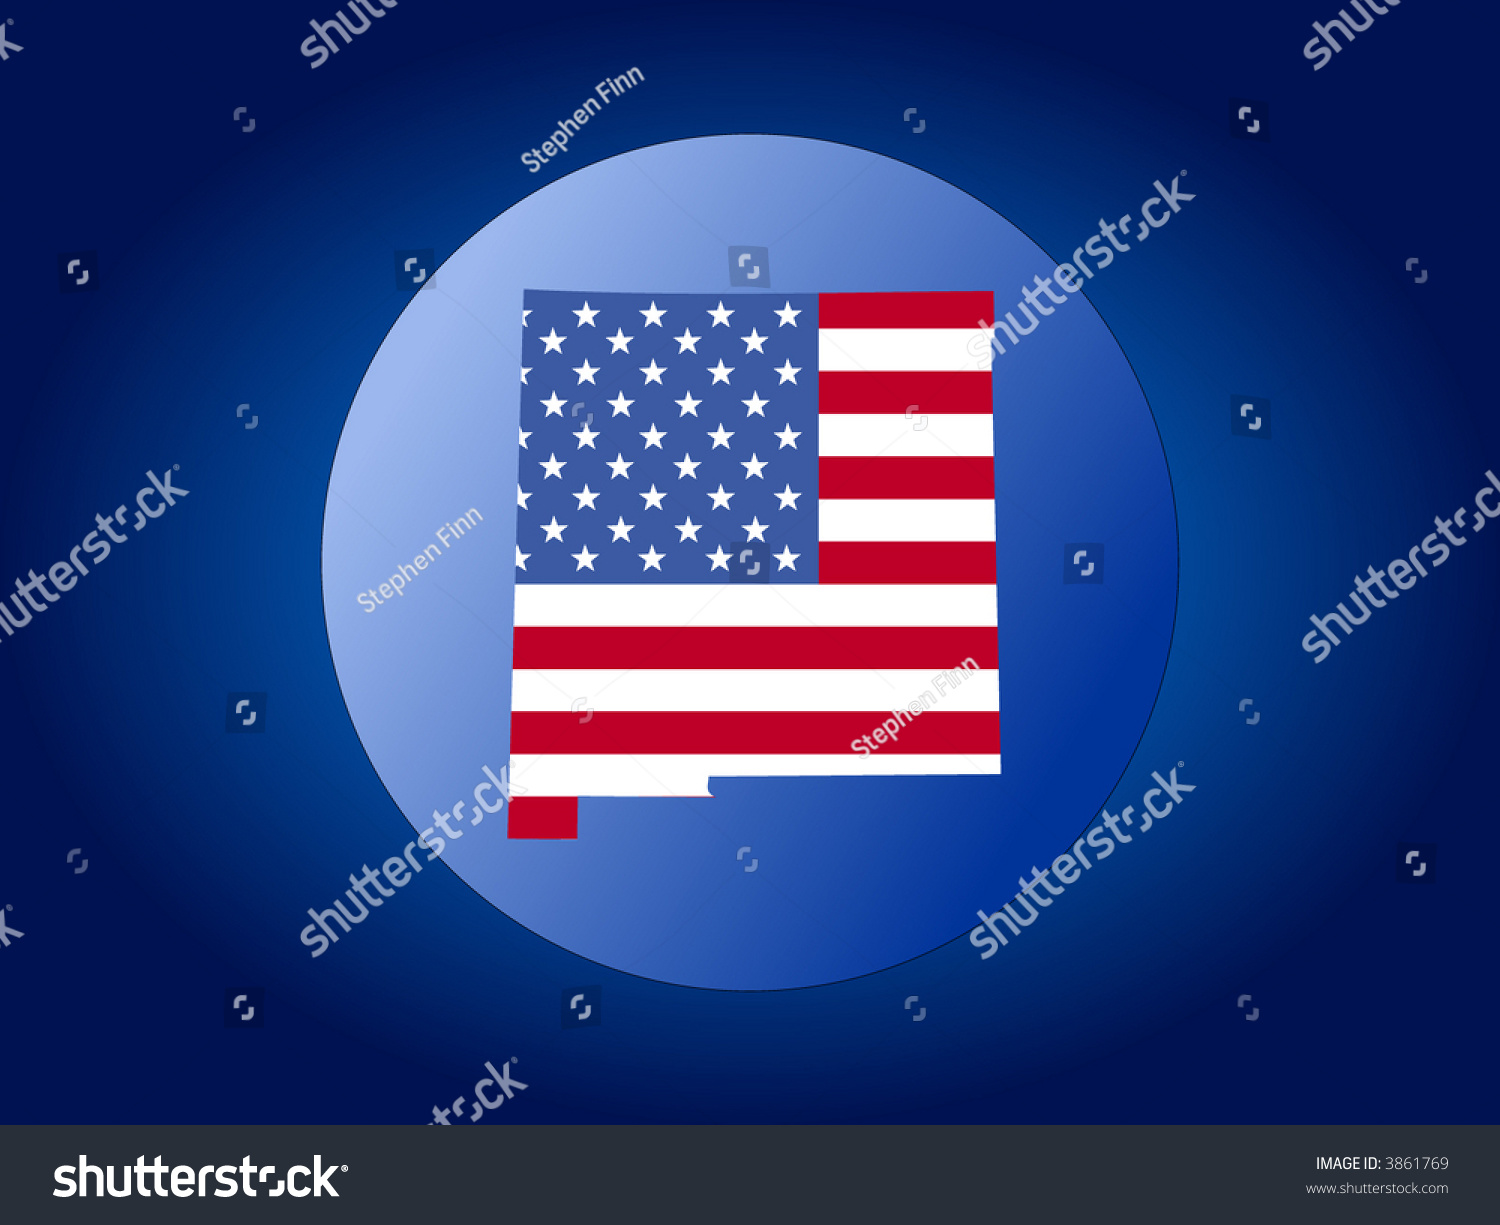 Map New Mexico American Flag Globe Stock Vector (Royalty ... United States Flag And Mexico Map on united states flag border, united states flaf, american flag, united states flag soccer, united states flag with eagle, united states flag drawing, chiapas state flag, united states america flag, 1830 united states flag, united states flag 1861, united states flag history, londonderry ireland flag, united states national flag, united states flag background, mexican flag, united states flag waving, united states flag texture, united states post flag, united states flag code, united states army flag,